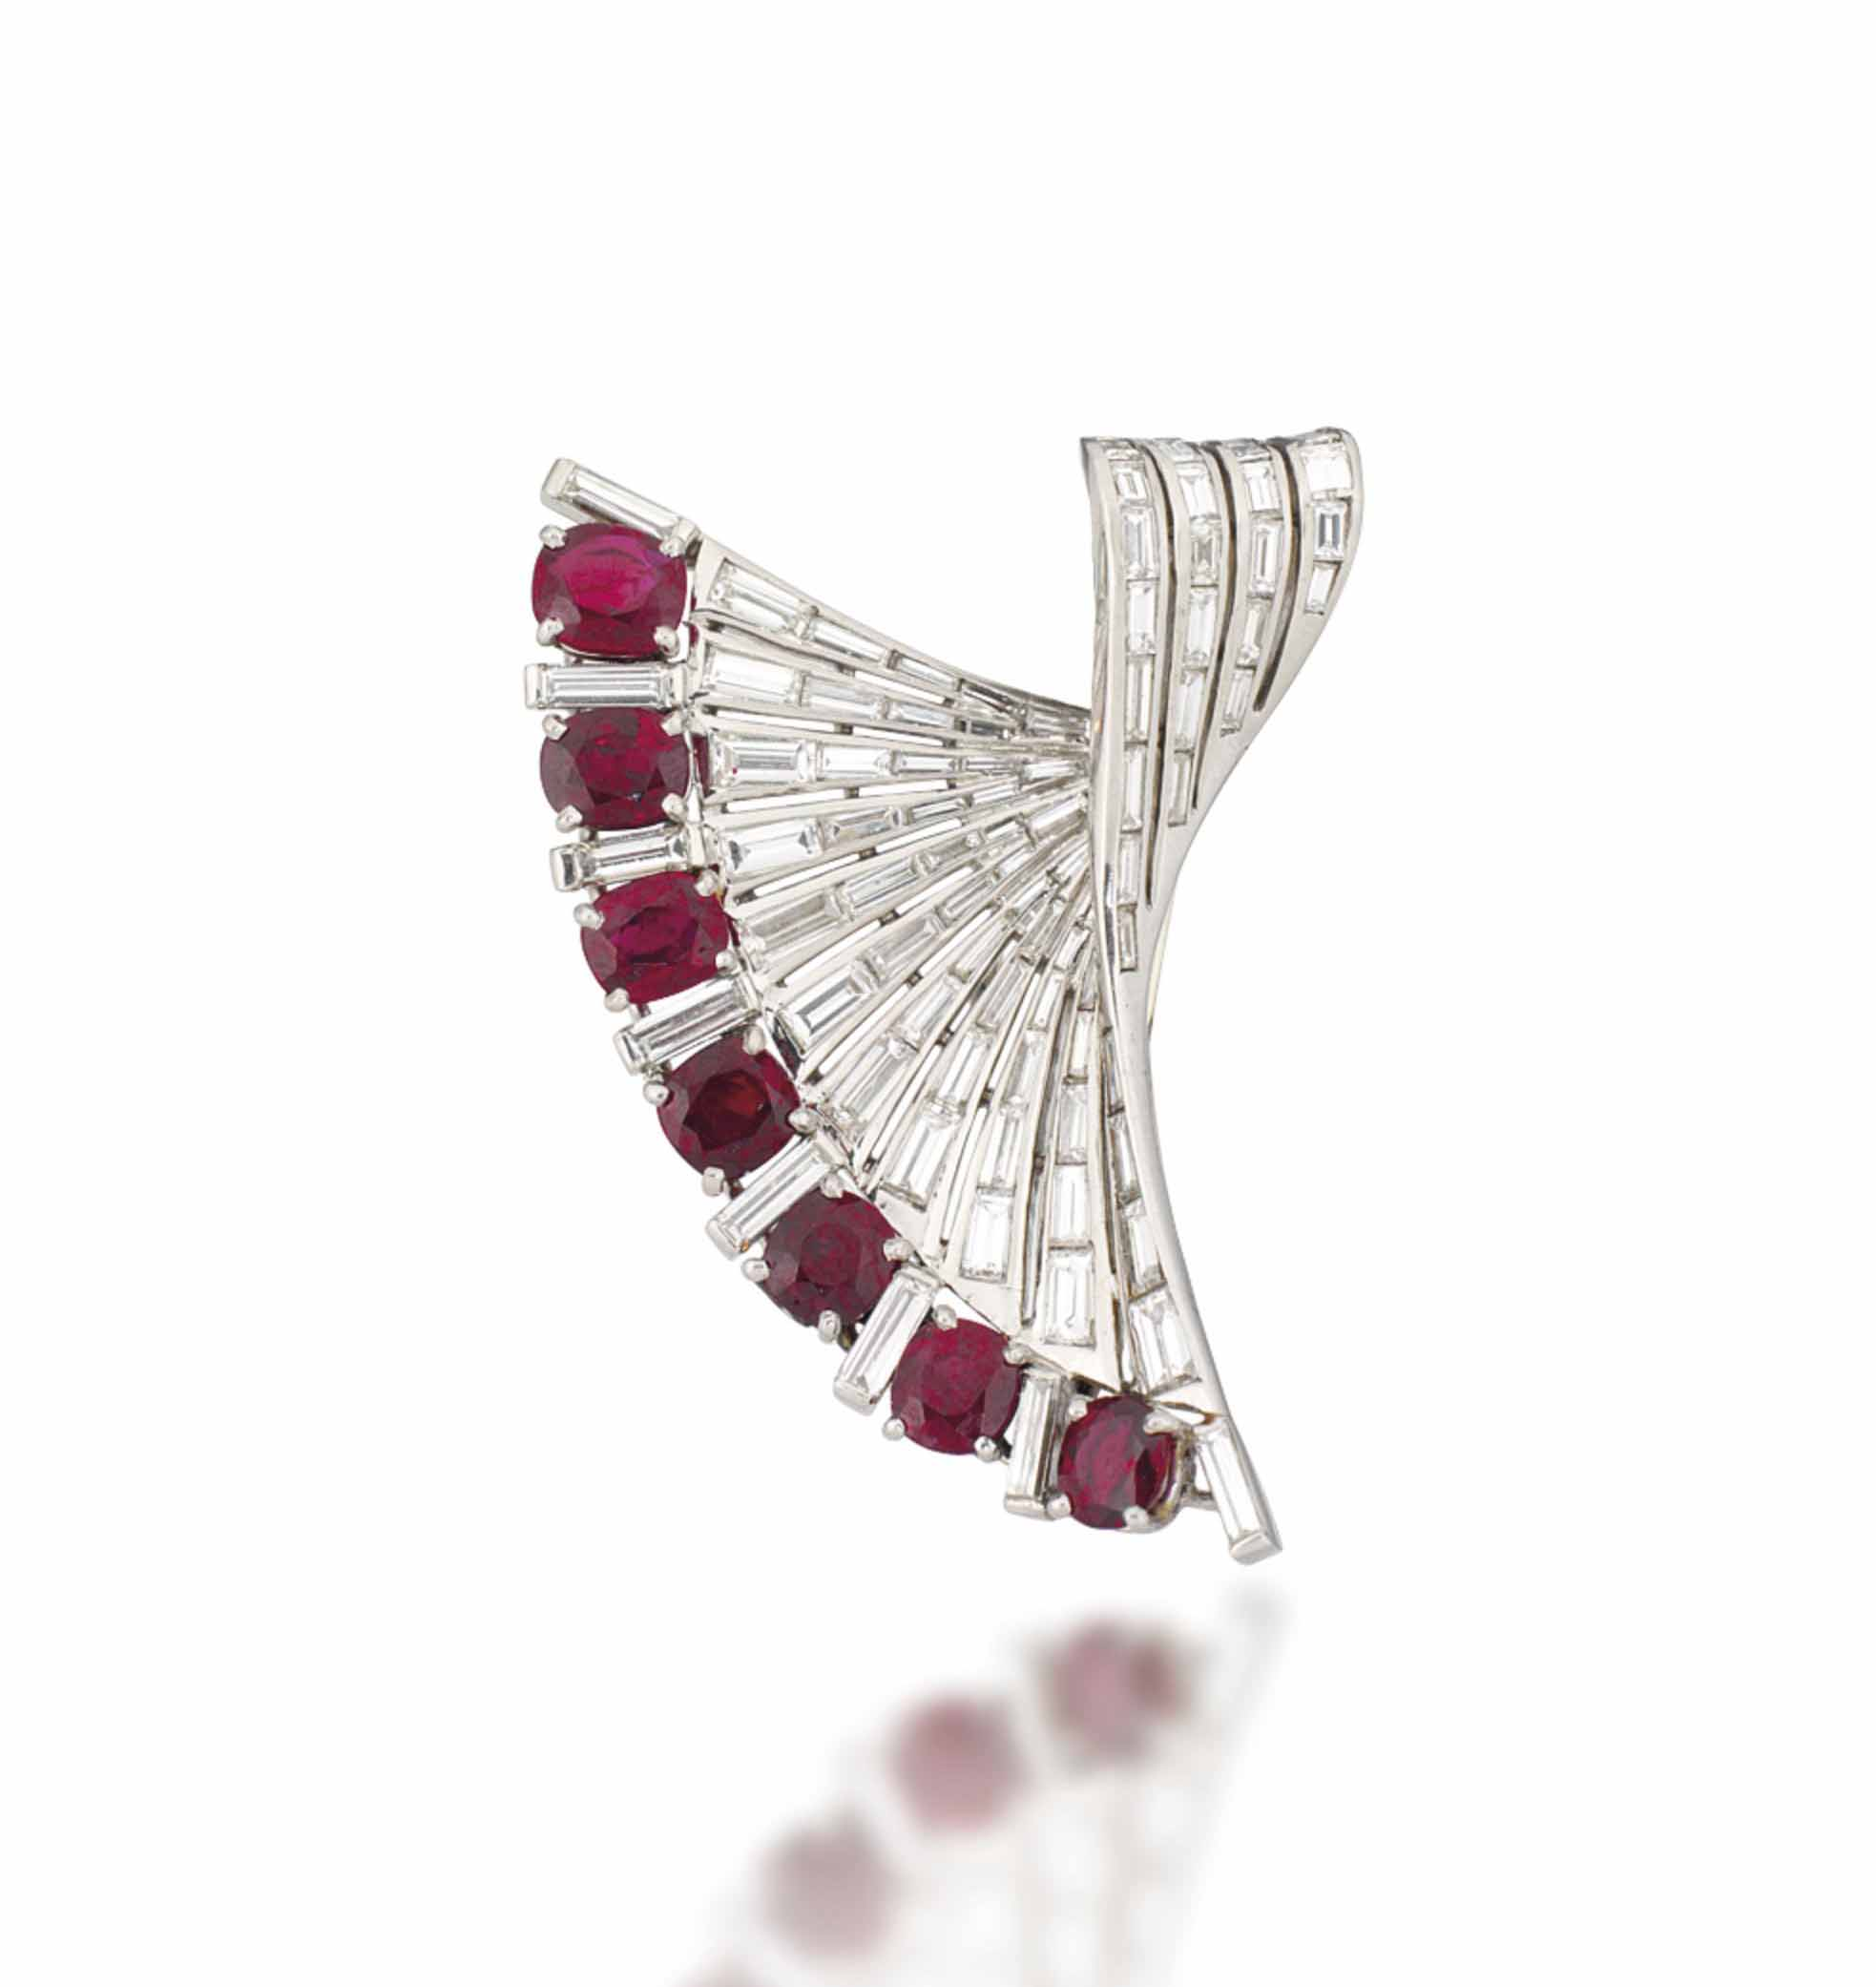 A RUBY AND DIAMOND BROOCH, BY STERLE